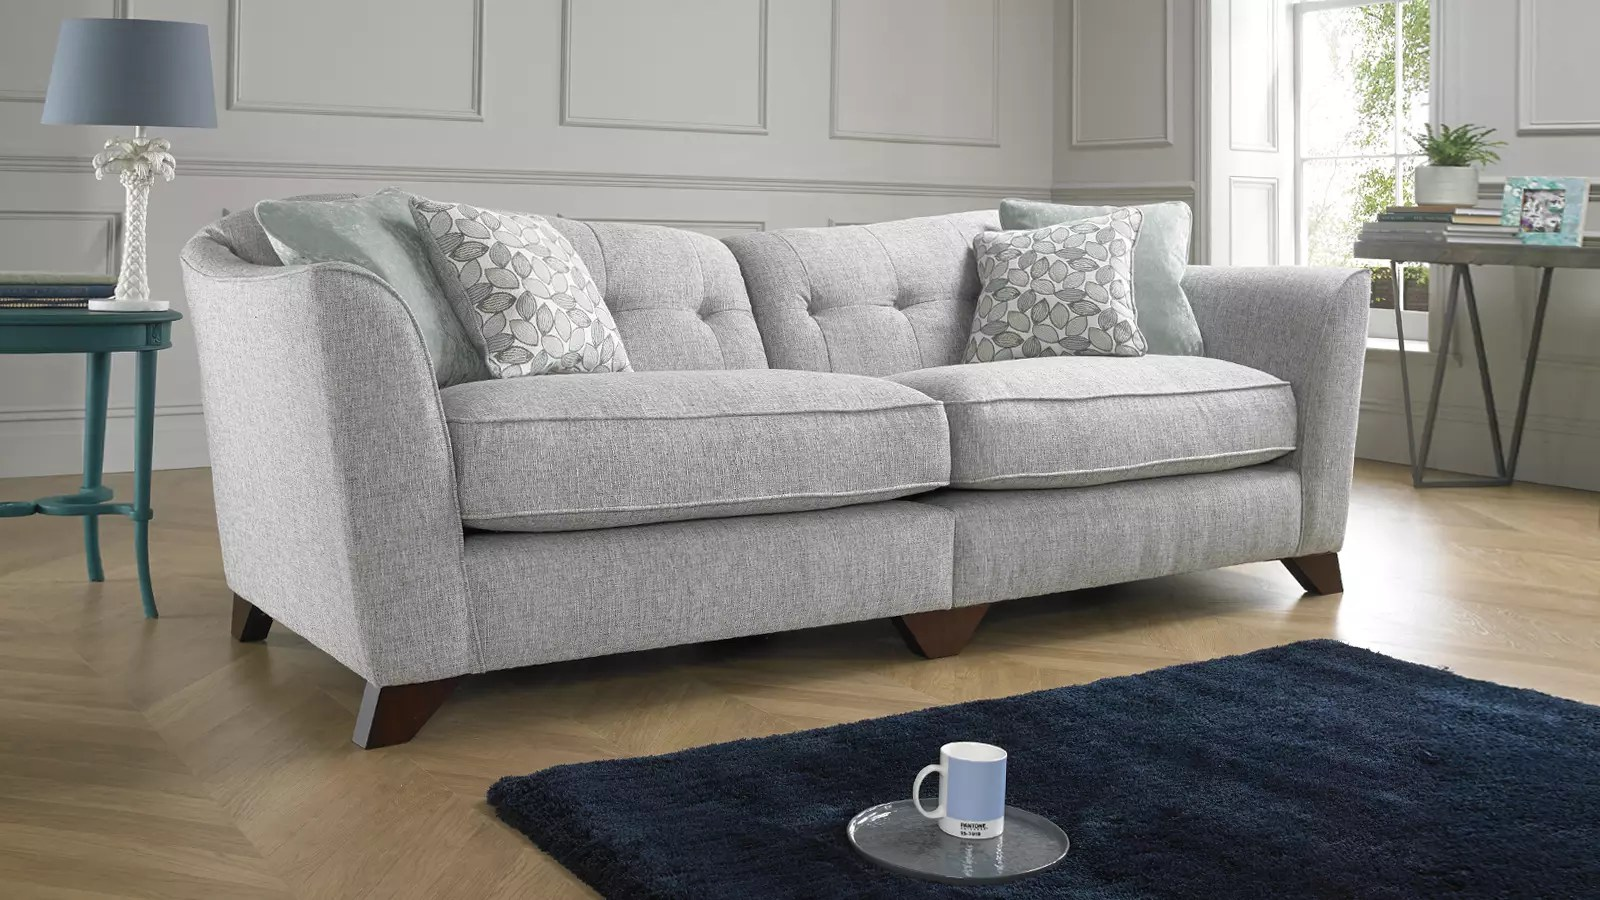 retro sofas fulham all modern sofa beds sofology corner and chairs always